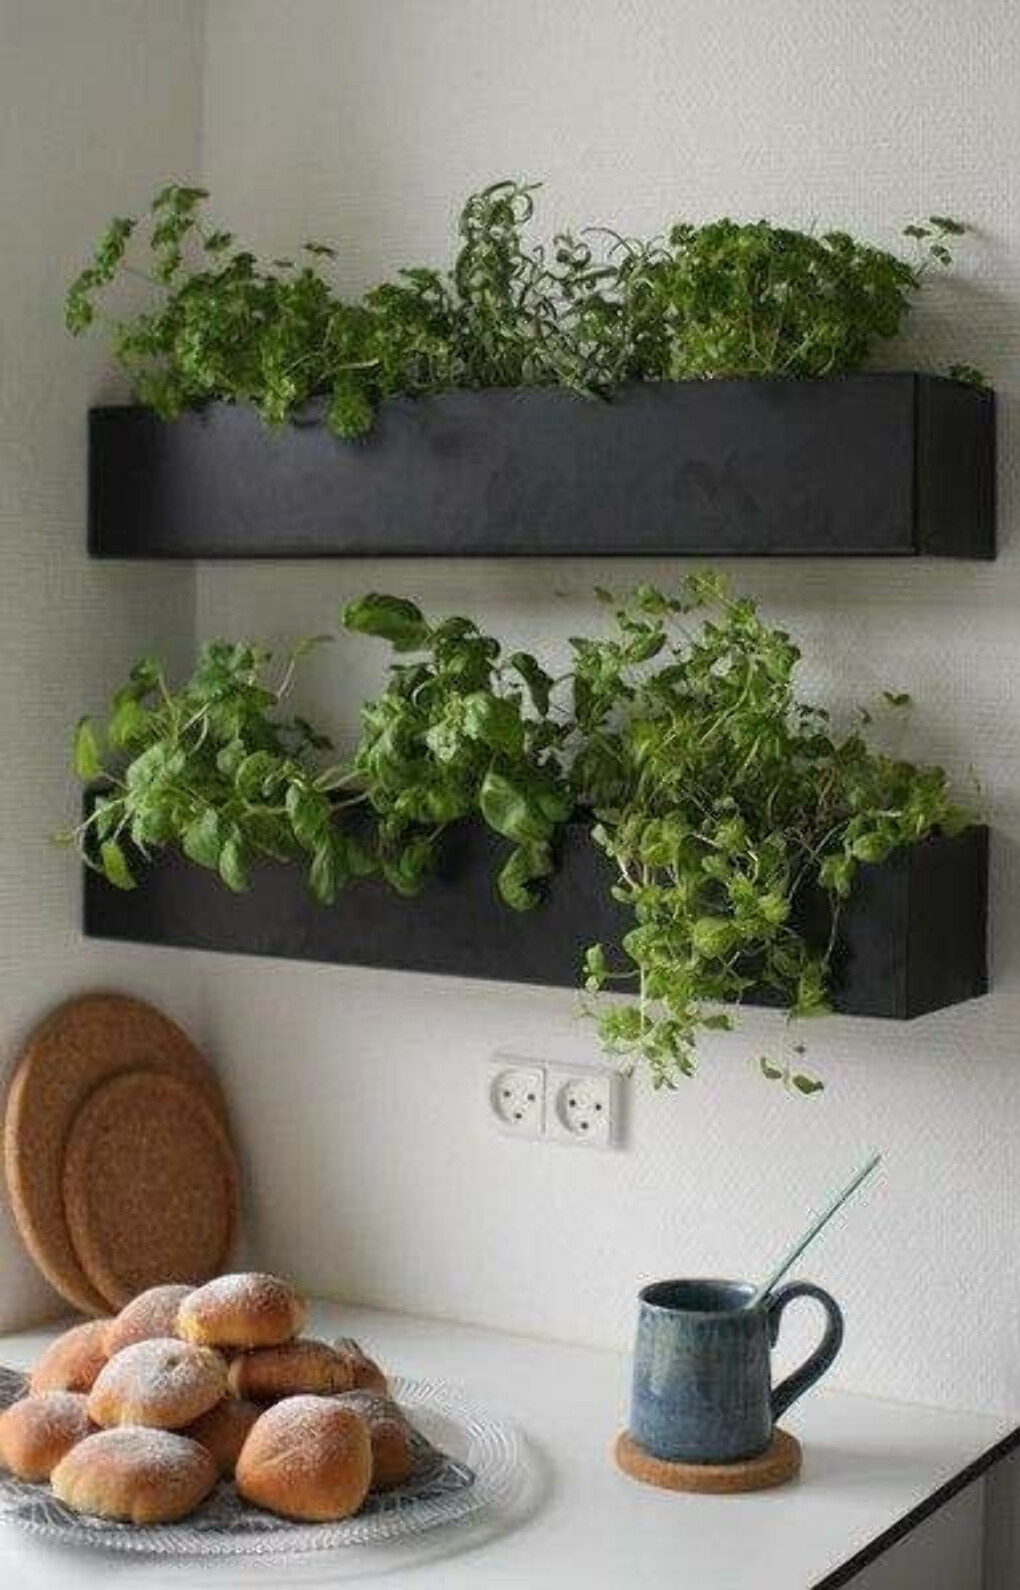 Herb garden on kitchen